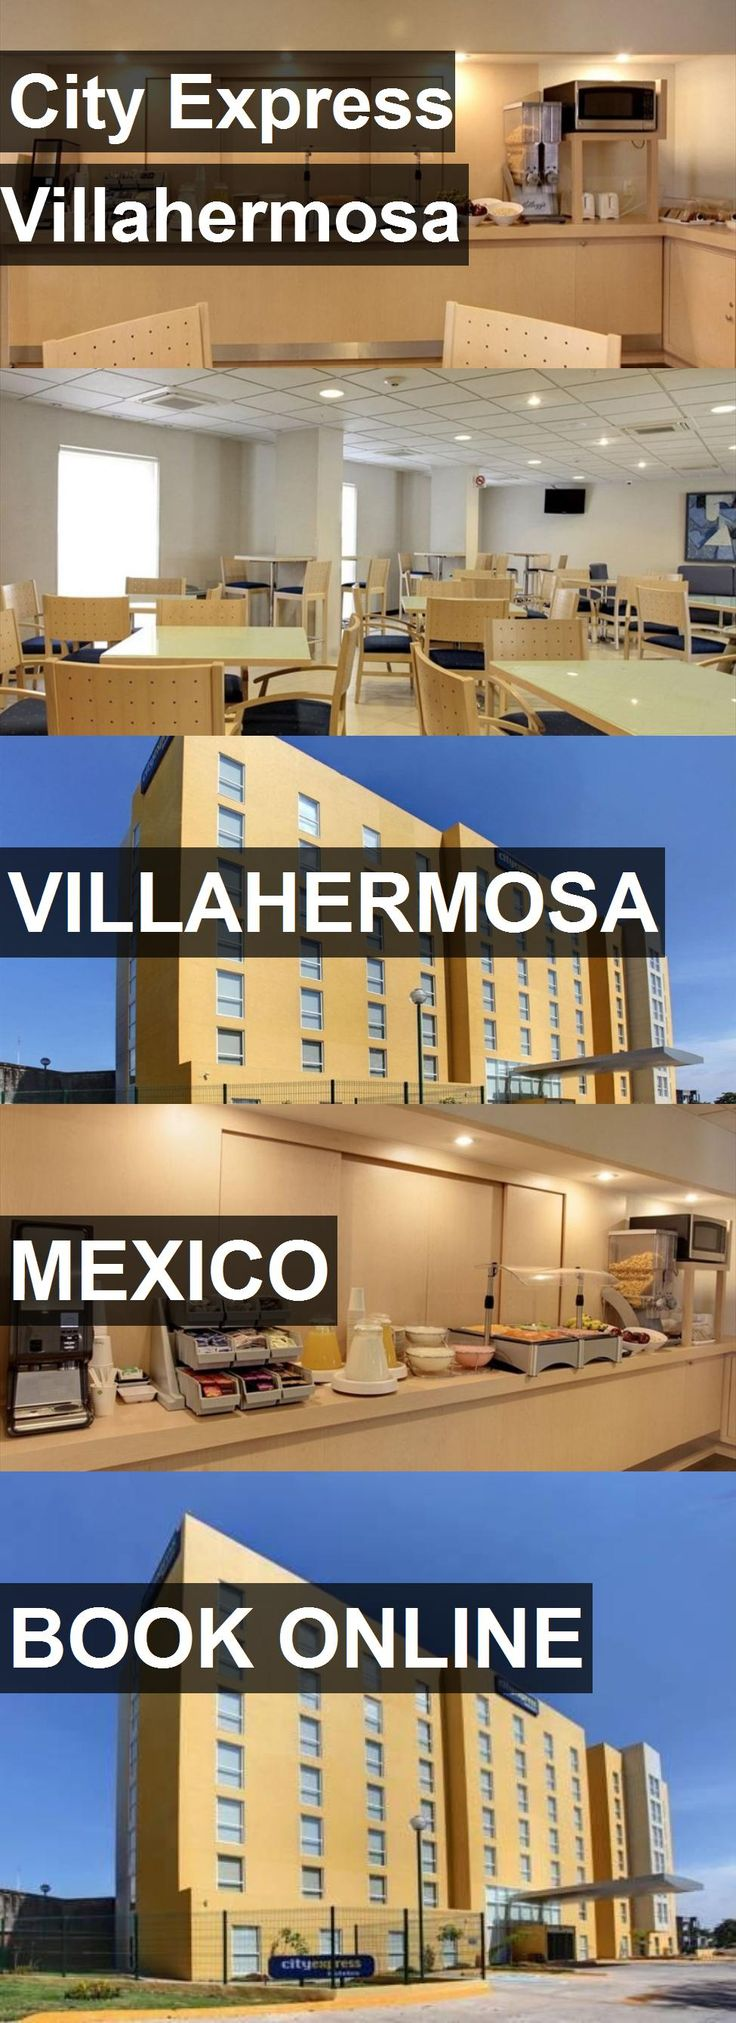 Hotel City Express Villahermosa in Villahermosa, Mexico. For more information, photos, reviews and best prices please follow the link. #Mexico #Villahermosa #travel #vacation #hotel